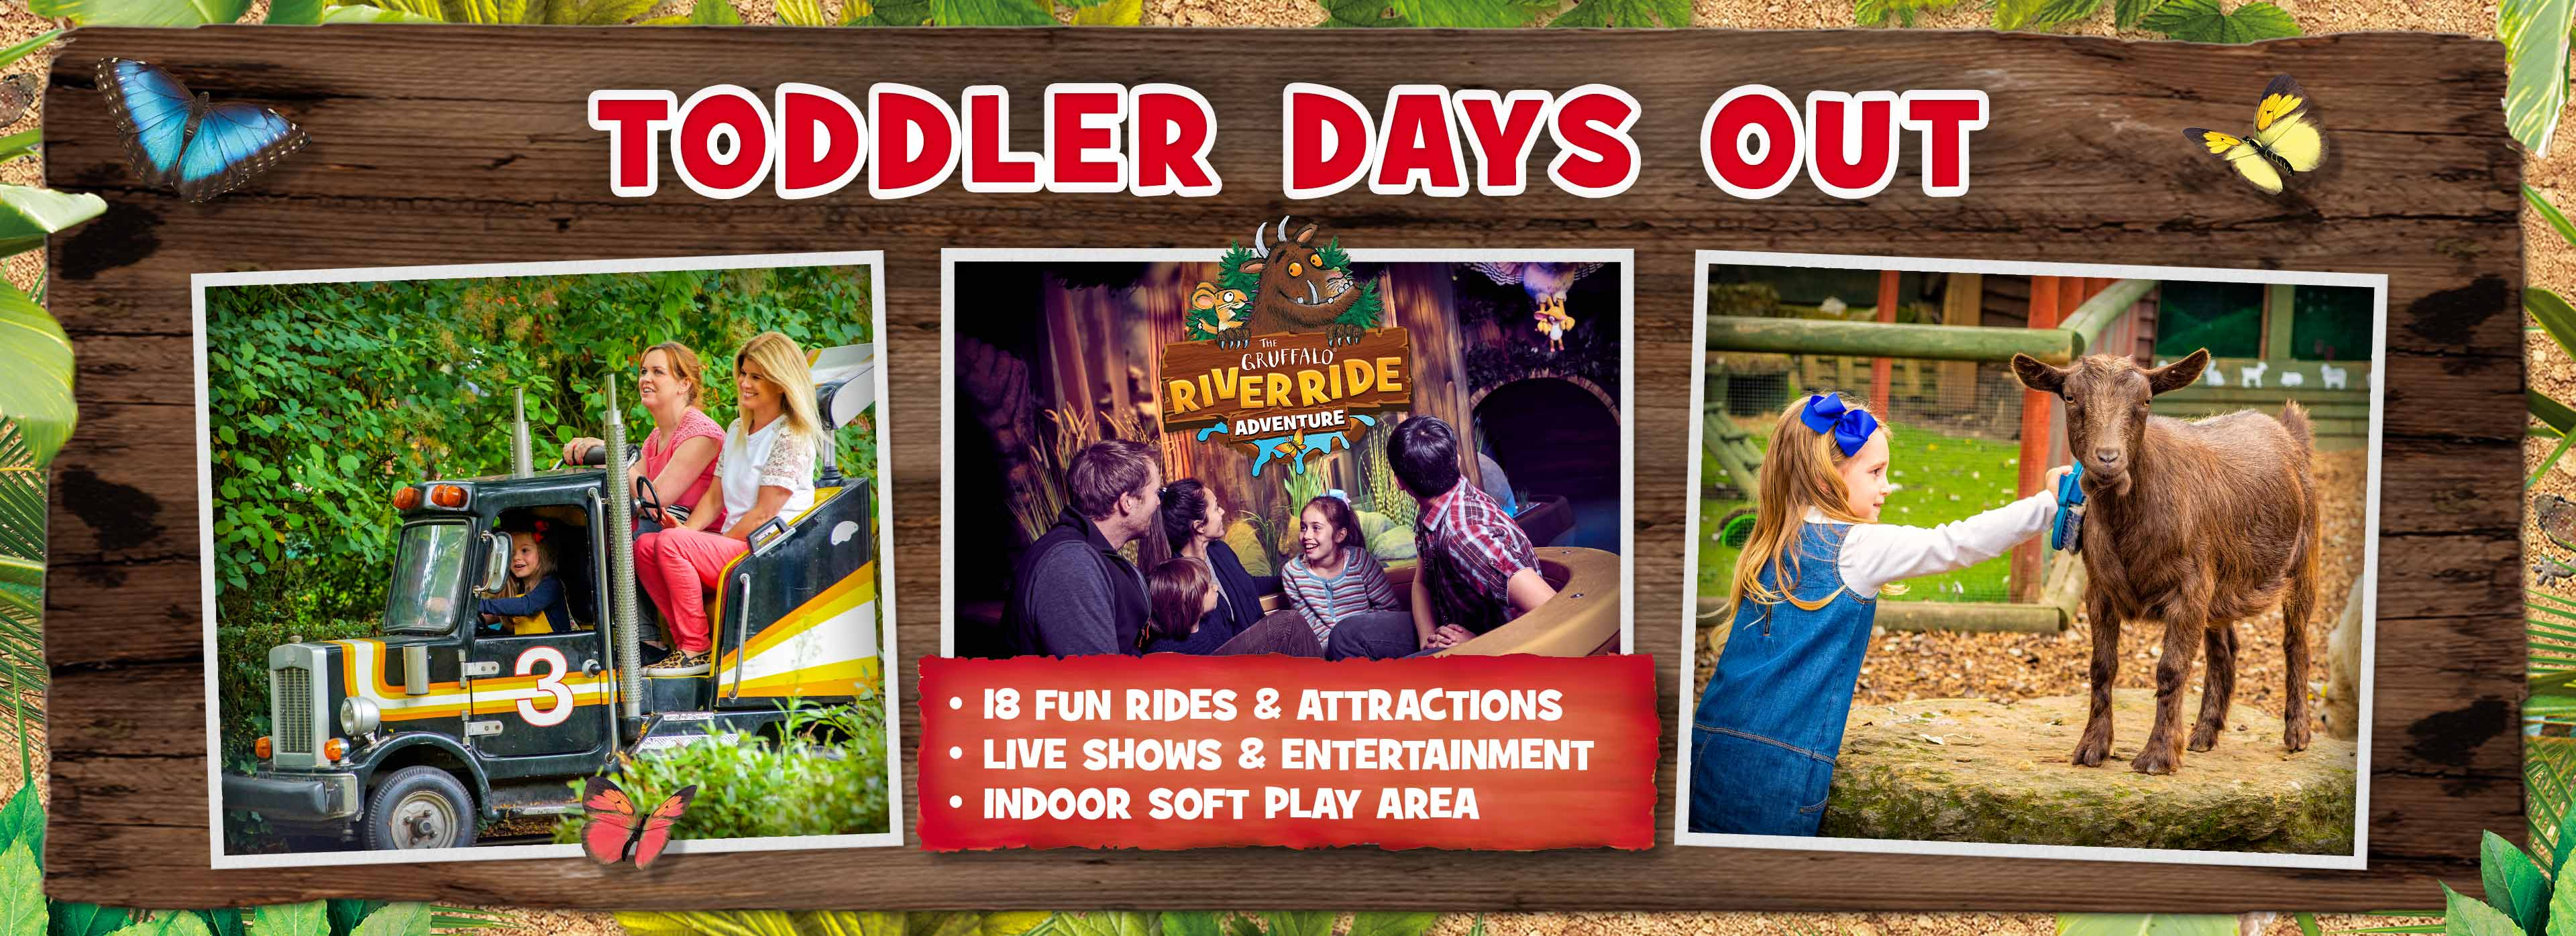 Things for toddlers to do at Chessington